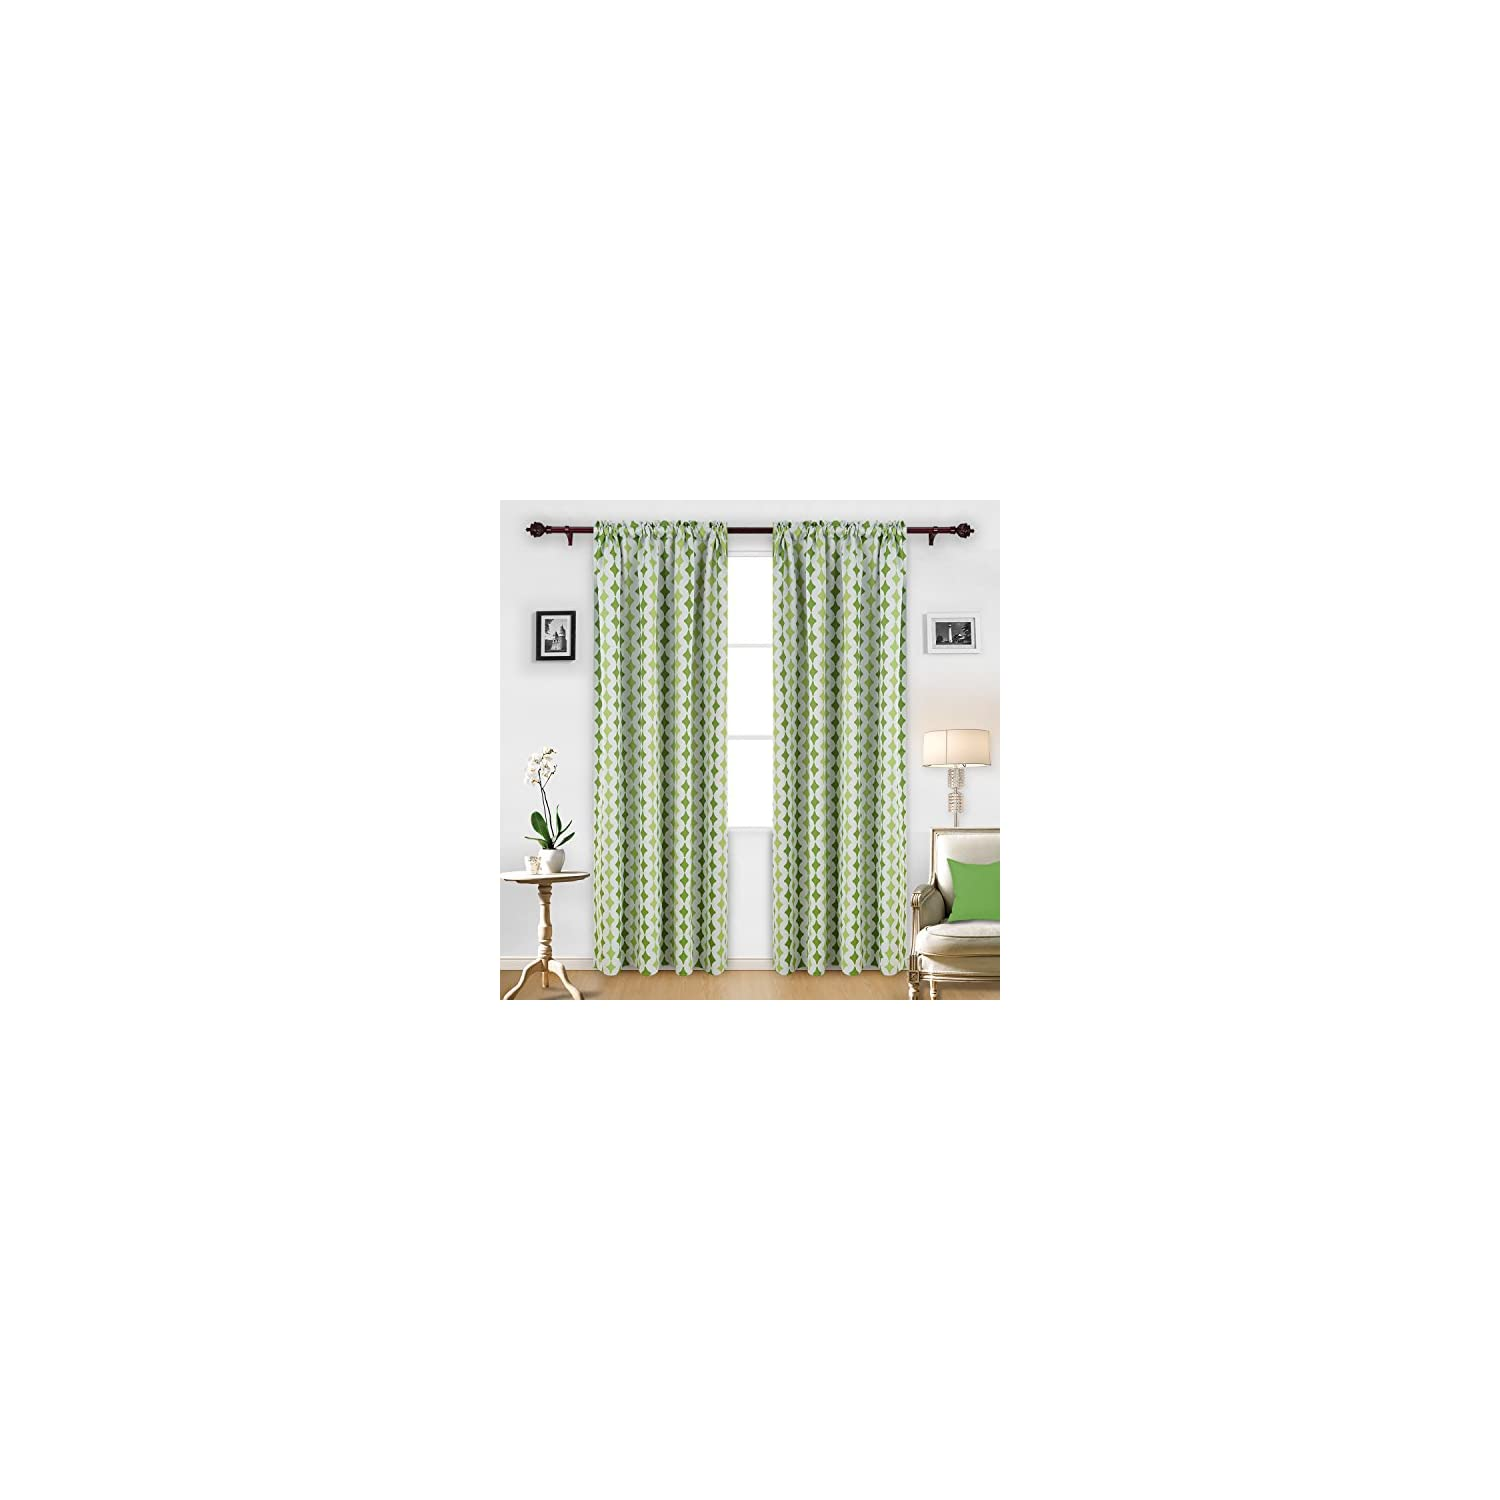 Deconovo Pattern Rod Pocket Blackout Curtains Window Treatment Panels for Bedroom, 52×95 Inch, Green